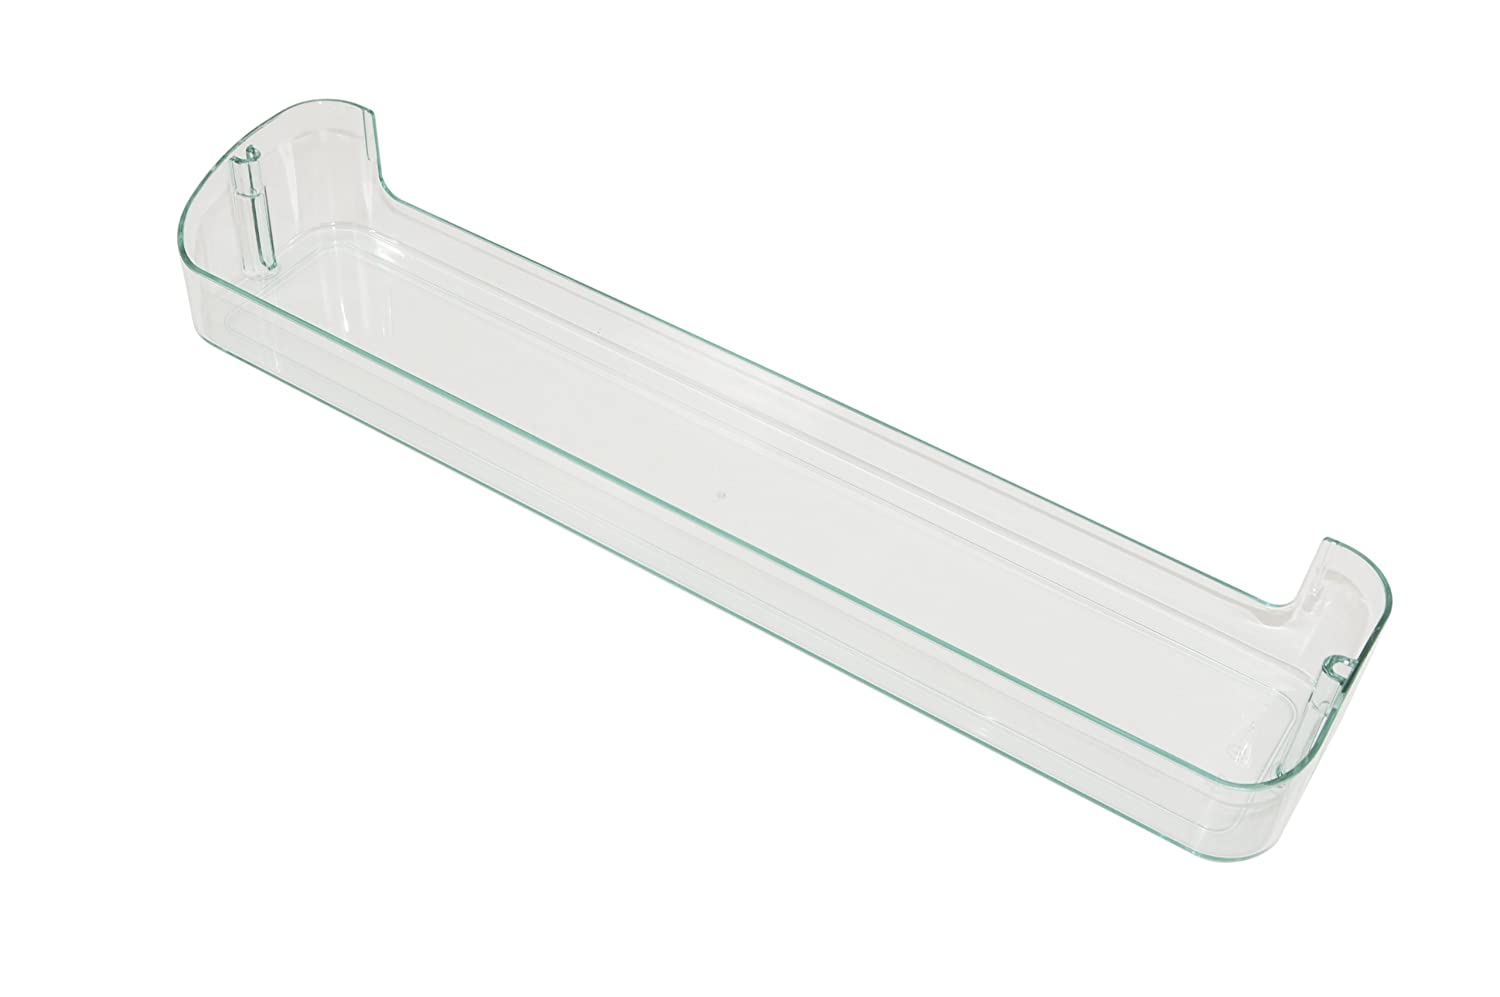 Frigidaire Hotpoint Fridge Freezer Clear Plastic Door Tray. Genuine part number 613203